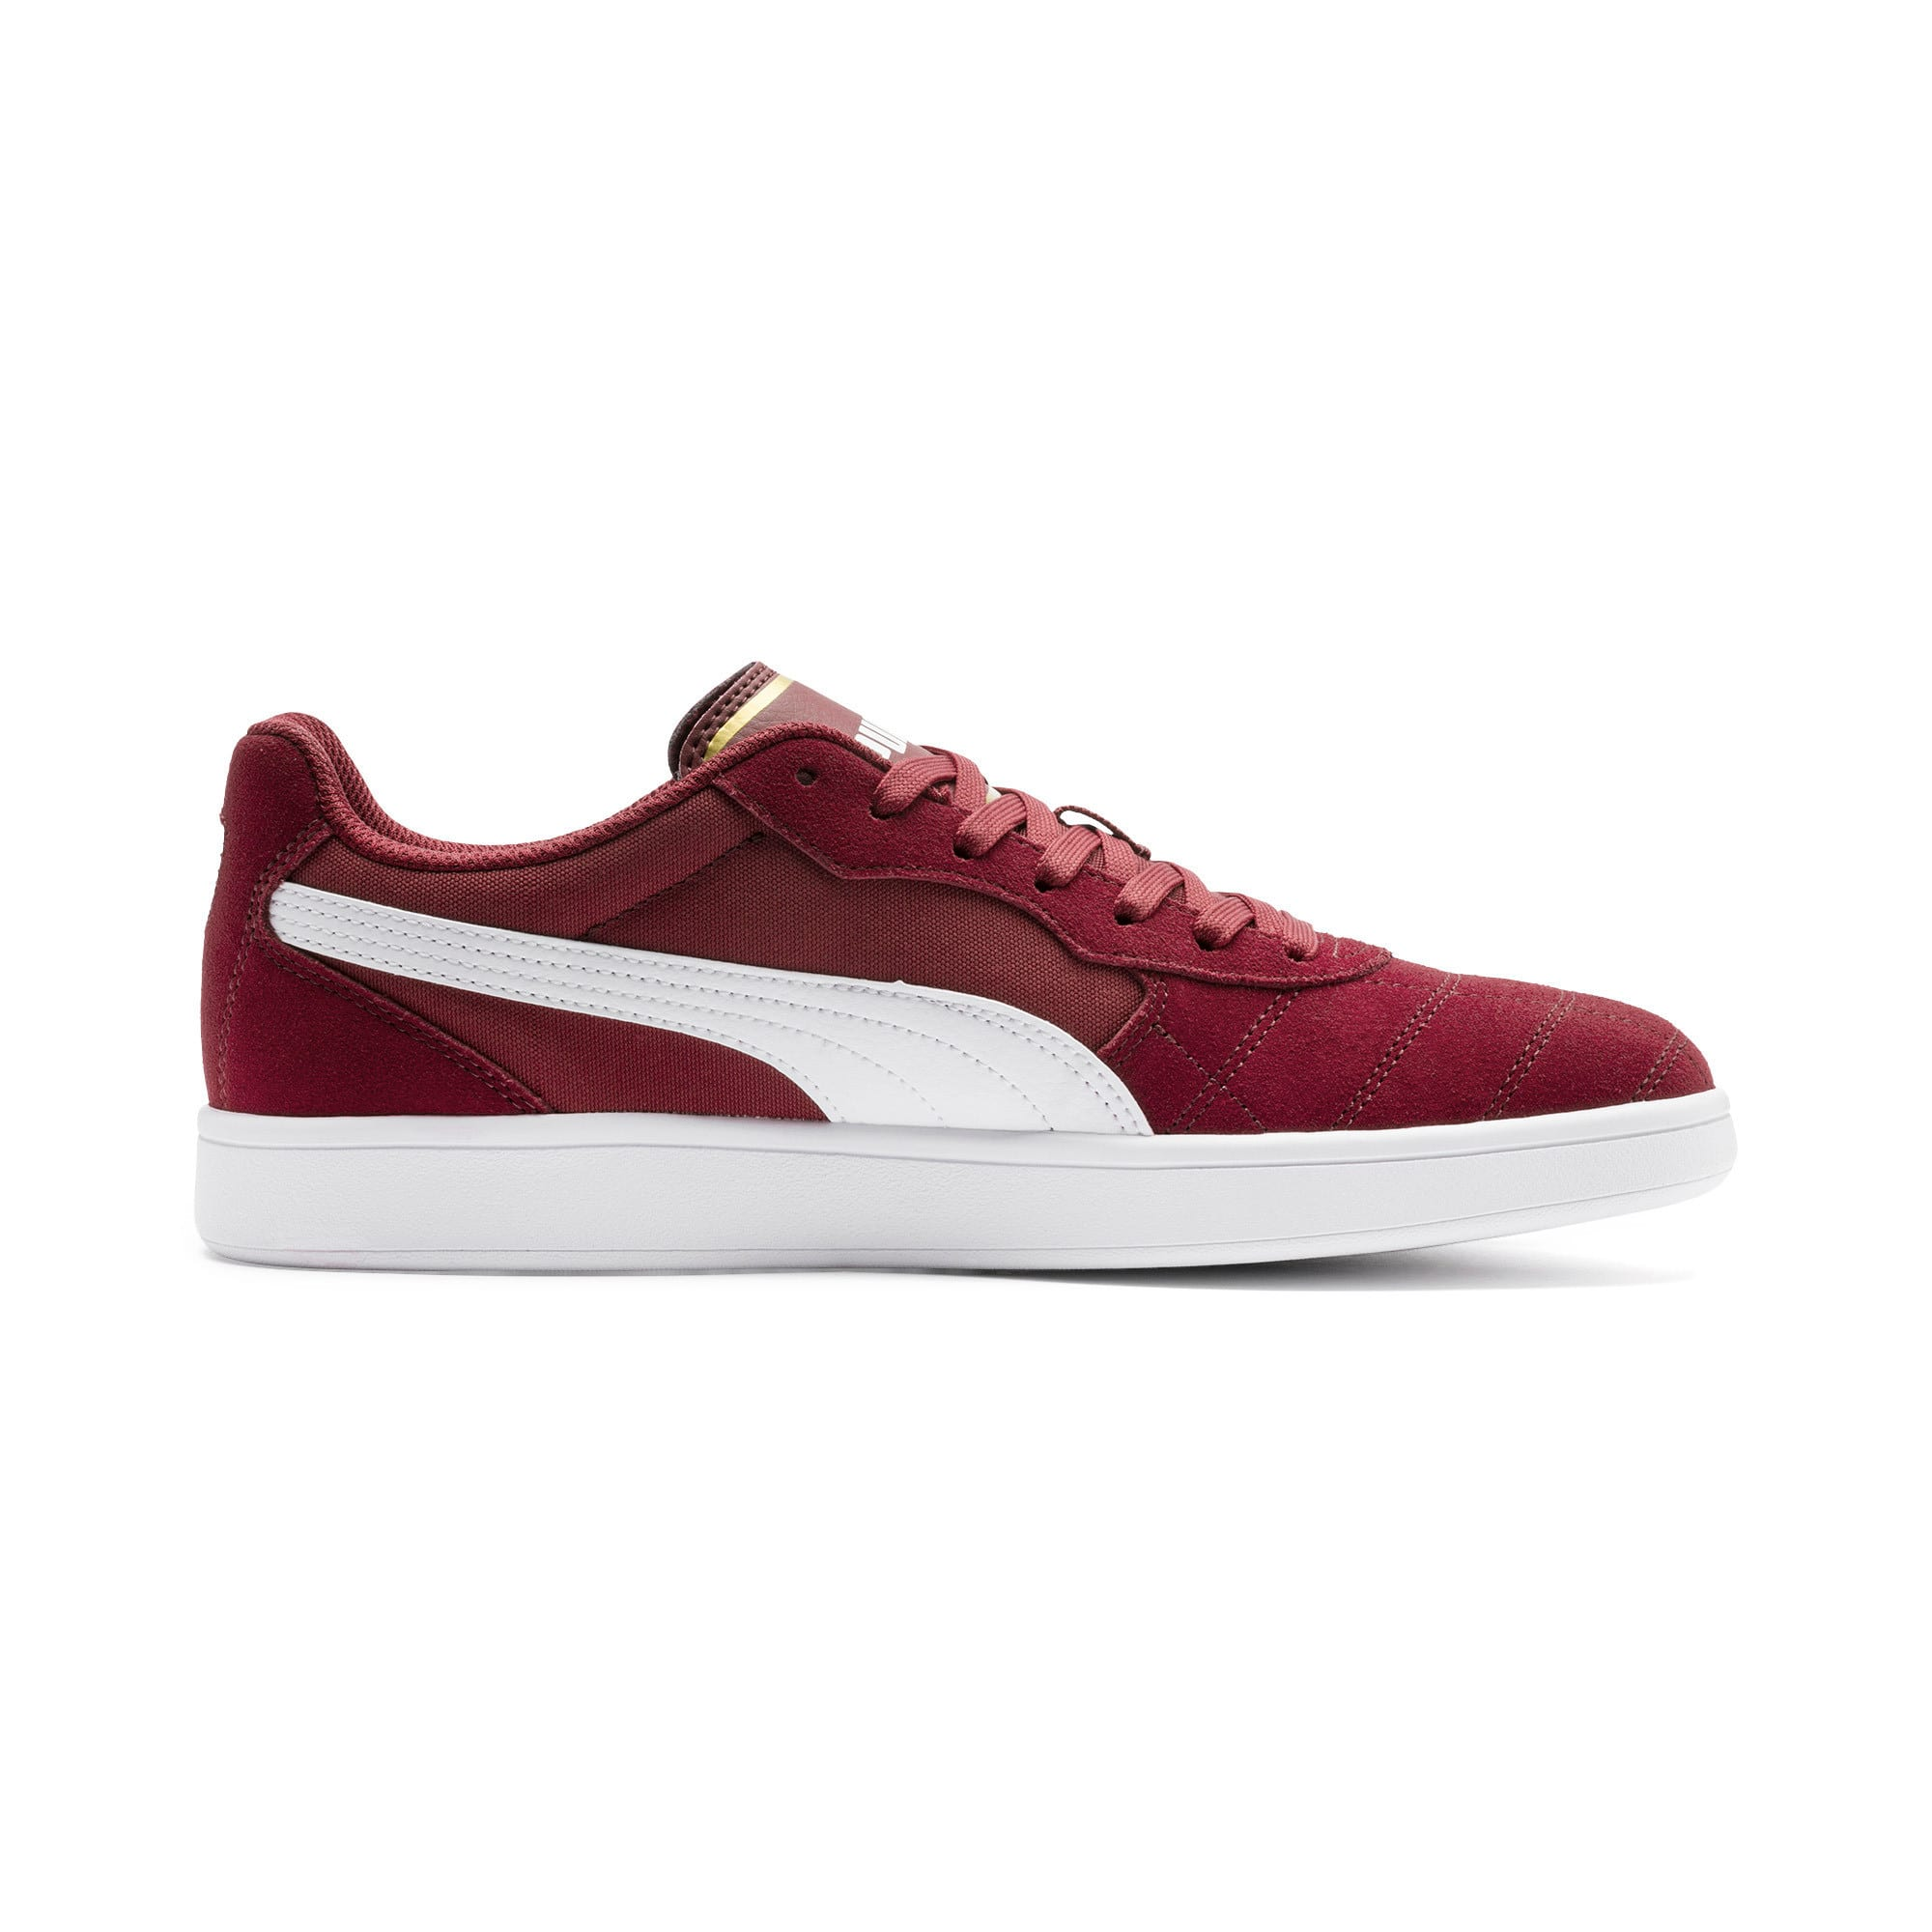 Thumbnail 6 of Zapatillas Astro Kick, Rhubarb-Puma White-Gold, medium